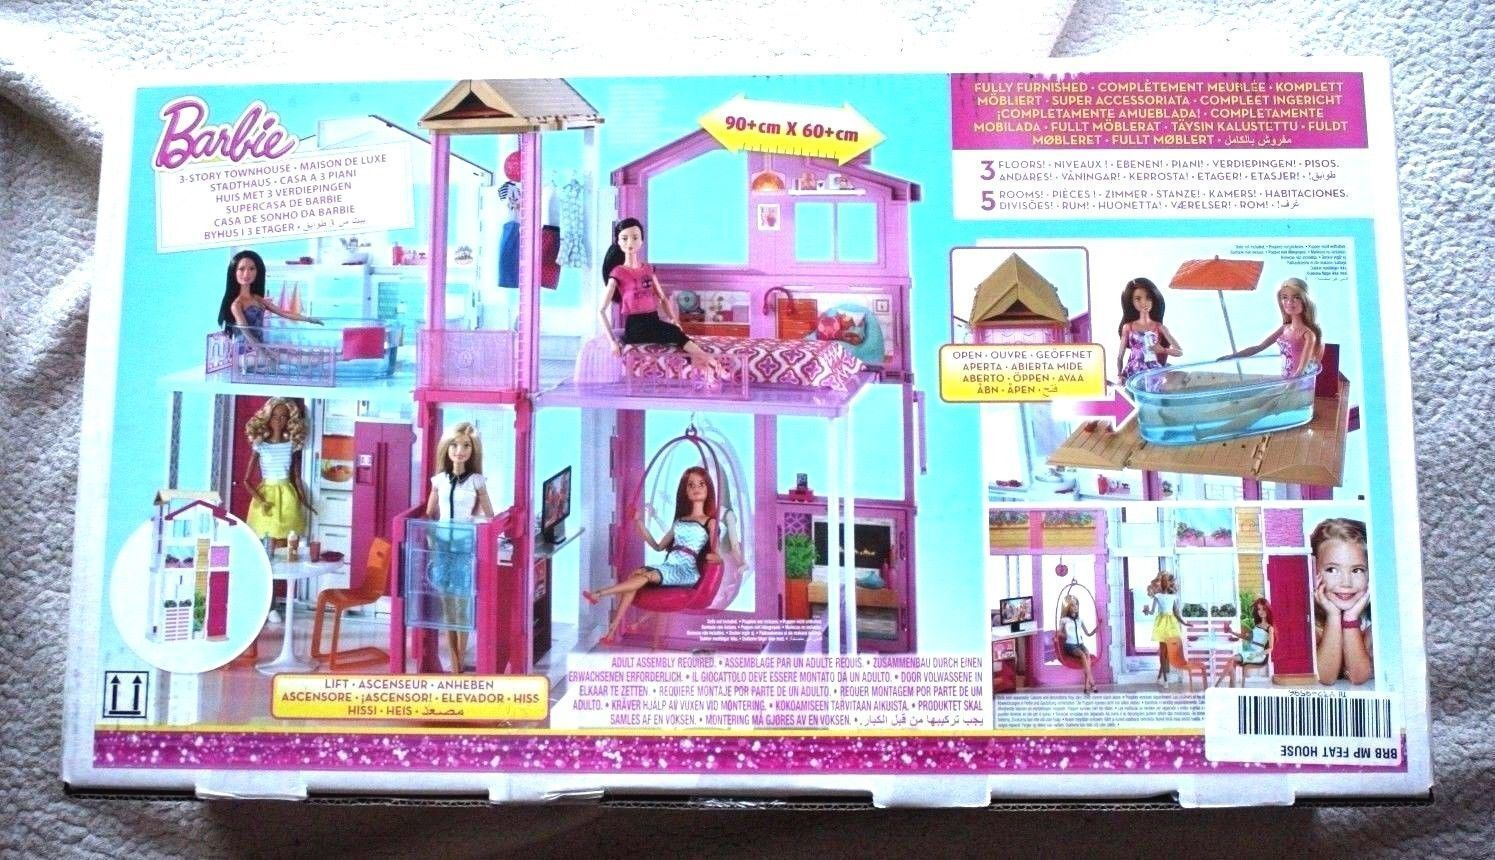 VERY RARE BARBIE 3-STORY TOWNHOUSE  3 FLOORS, 5 ROOMS, 90x60 CMs  BRAND NEW